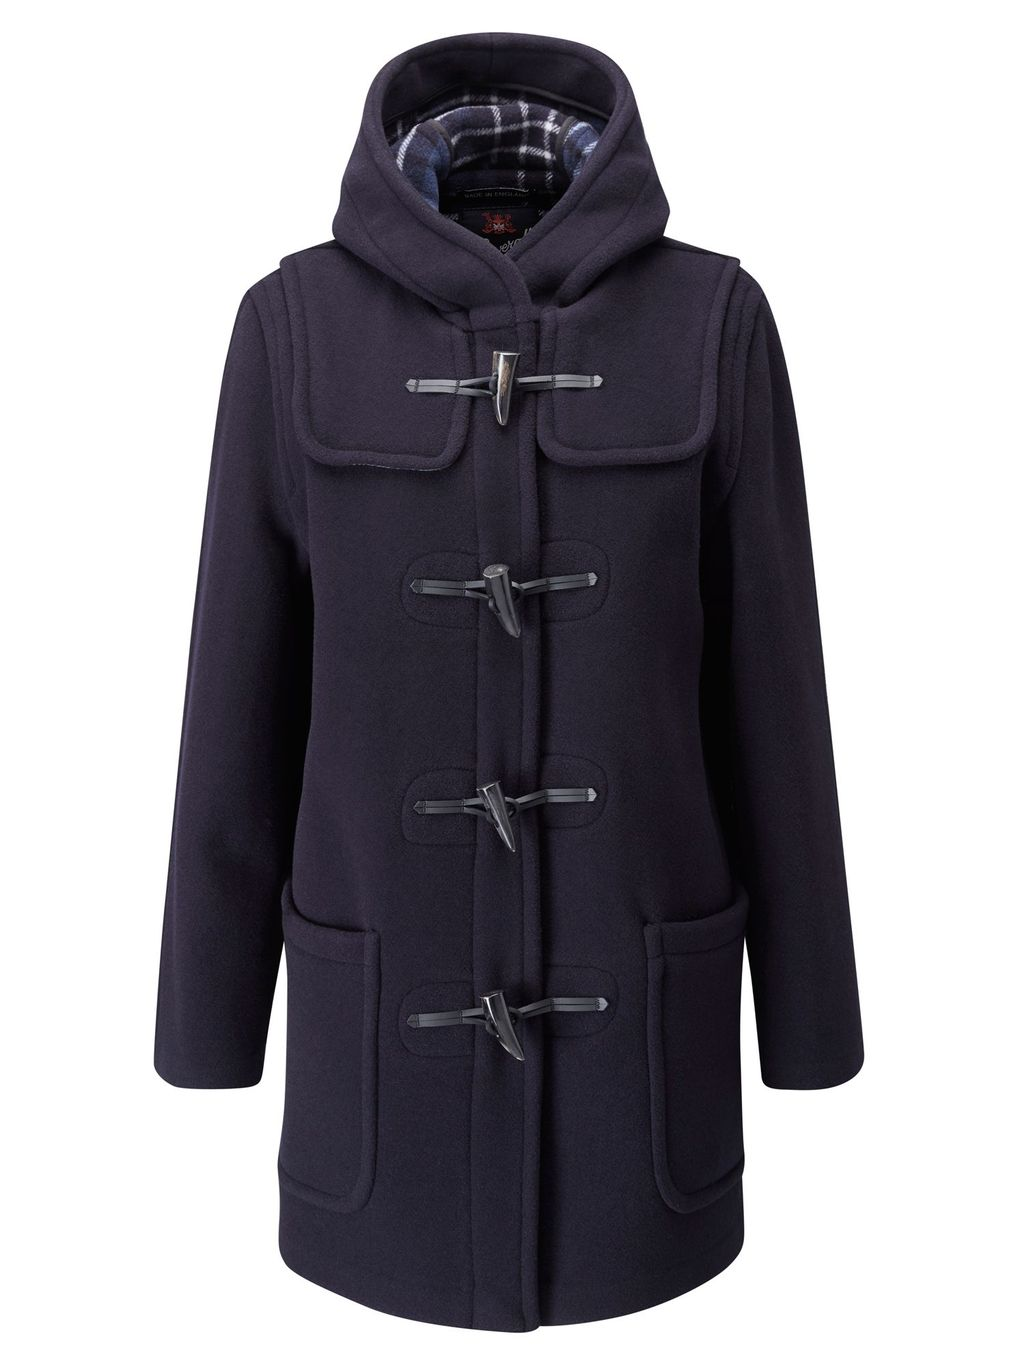 Mid Length Original Fit Duffle Coat, Navy - pattern: plain; collar: funnel; back detail: hood; style: duffle coat; length: mid thigh; predominant colour: navy; occasions: casual, creative work; fit: straight cut (boxy); fibres: wool - mix; sleeve length: long sleeve; sleeve style: standard; collar break: high; texture group: woven bulky/heavy; season: a/w 2015; wardrobe: basic